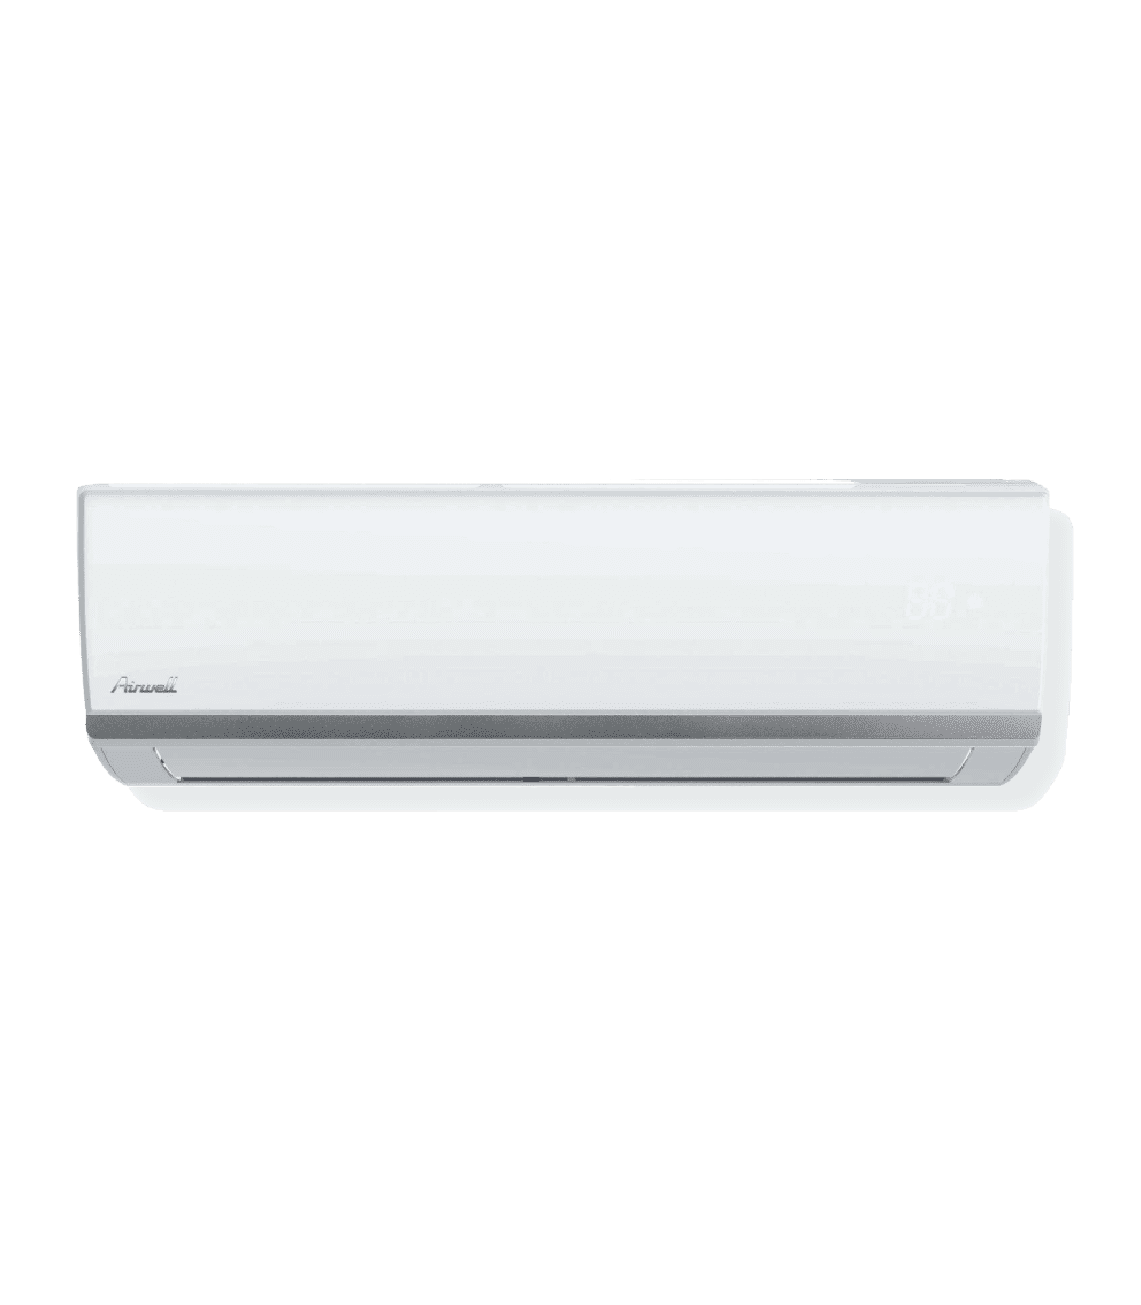 Airwell Indoor Wall-mounted Pac Air 6.16-6.45 KW Split  AW-HDLW024-N91 WIFI